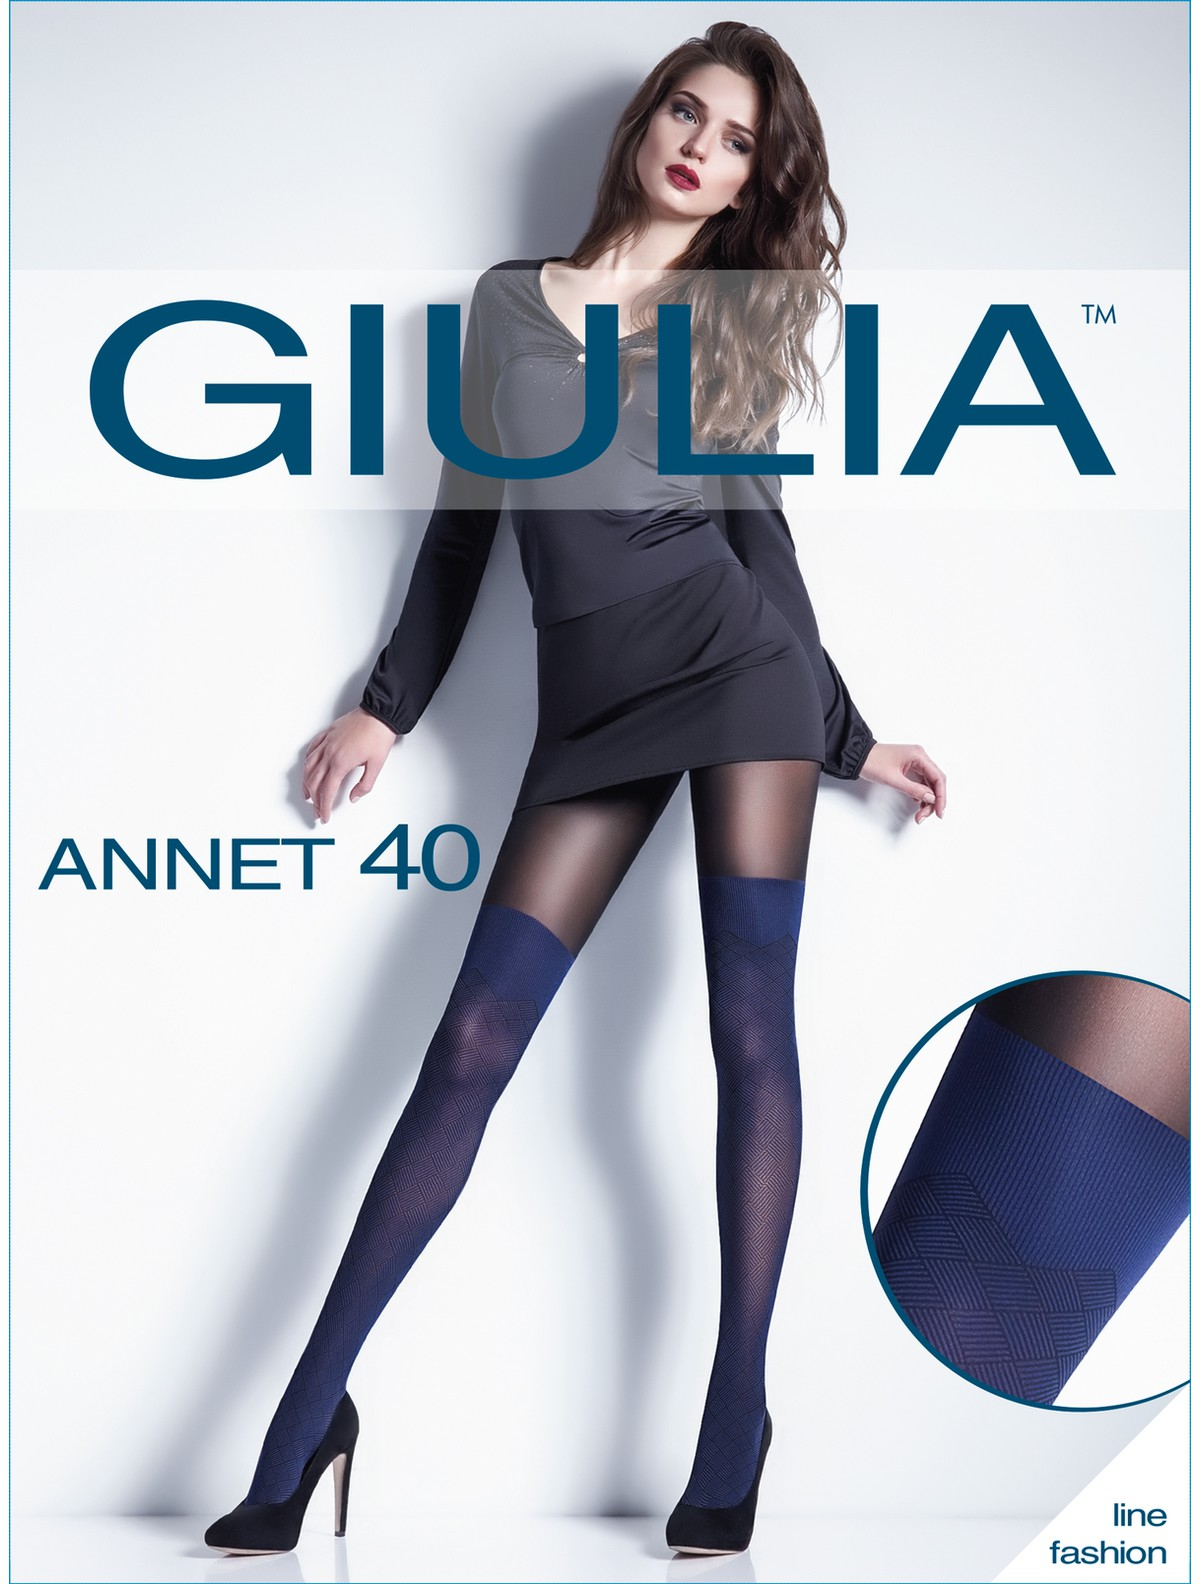 f61659e14b4 Styles cover the full range of women s hosiery